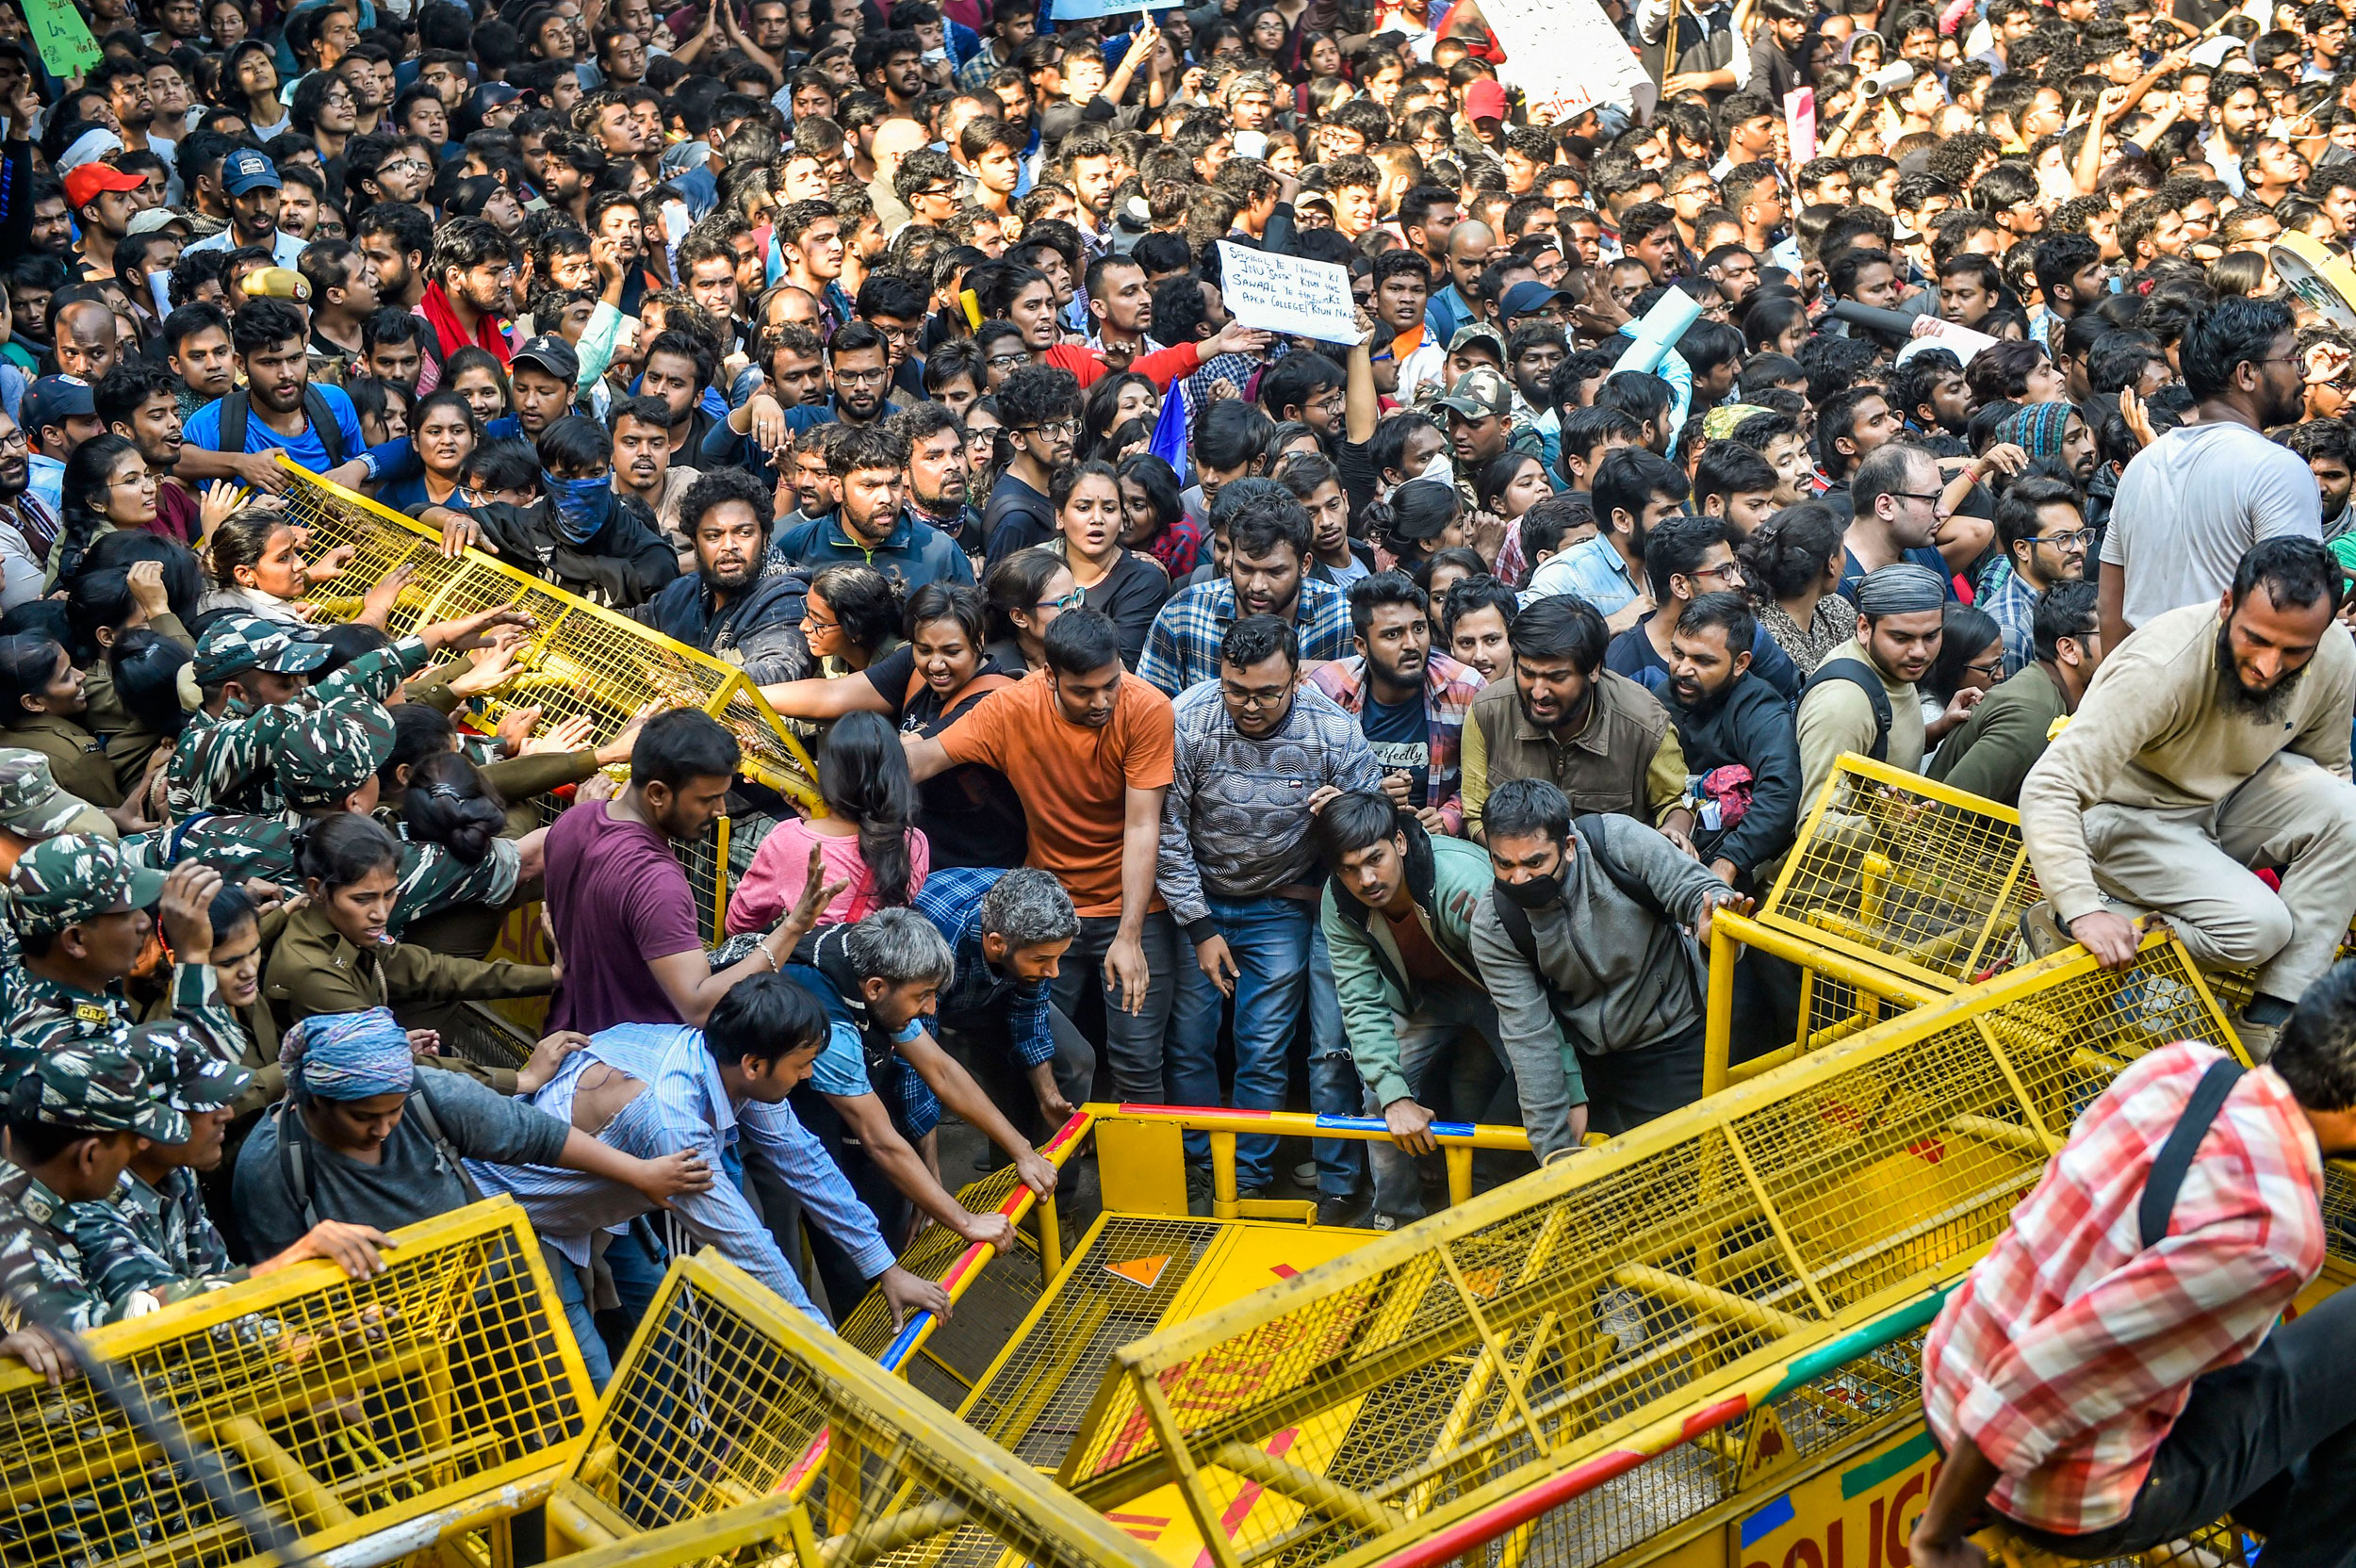 JNU students try to get past police barricades during a protest march in New Delhi on November 18, 2019.